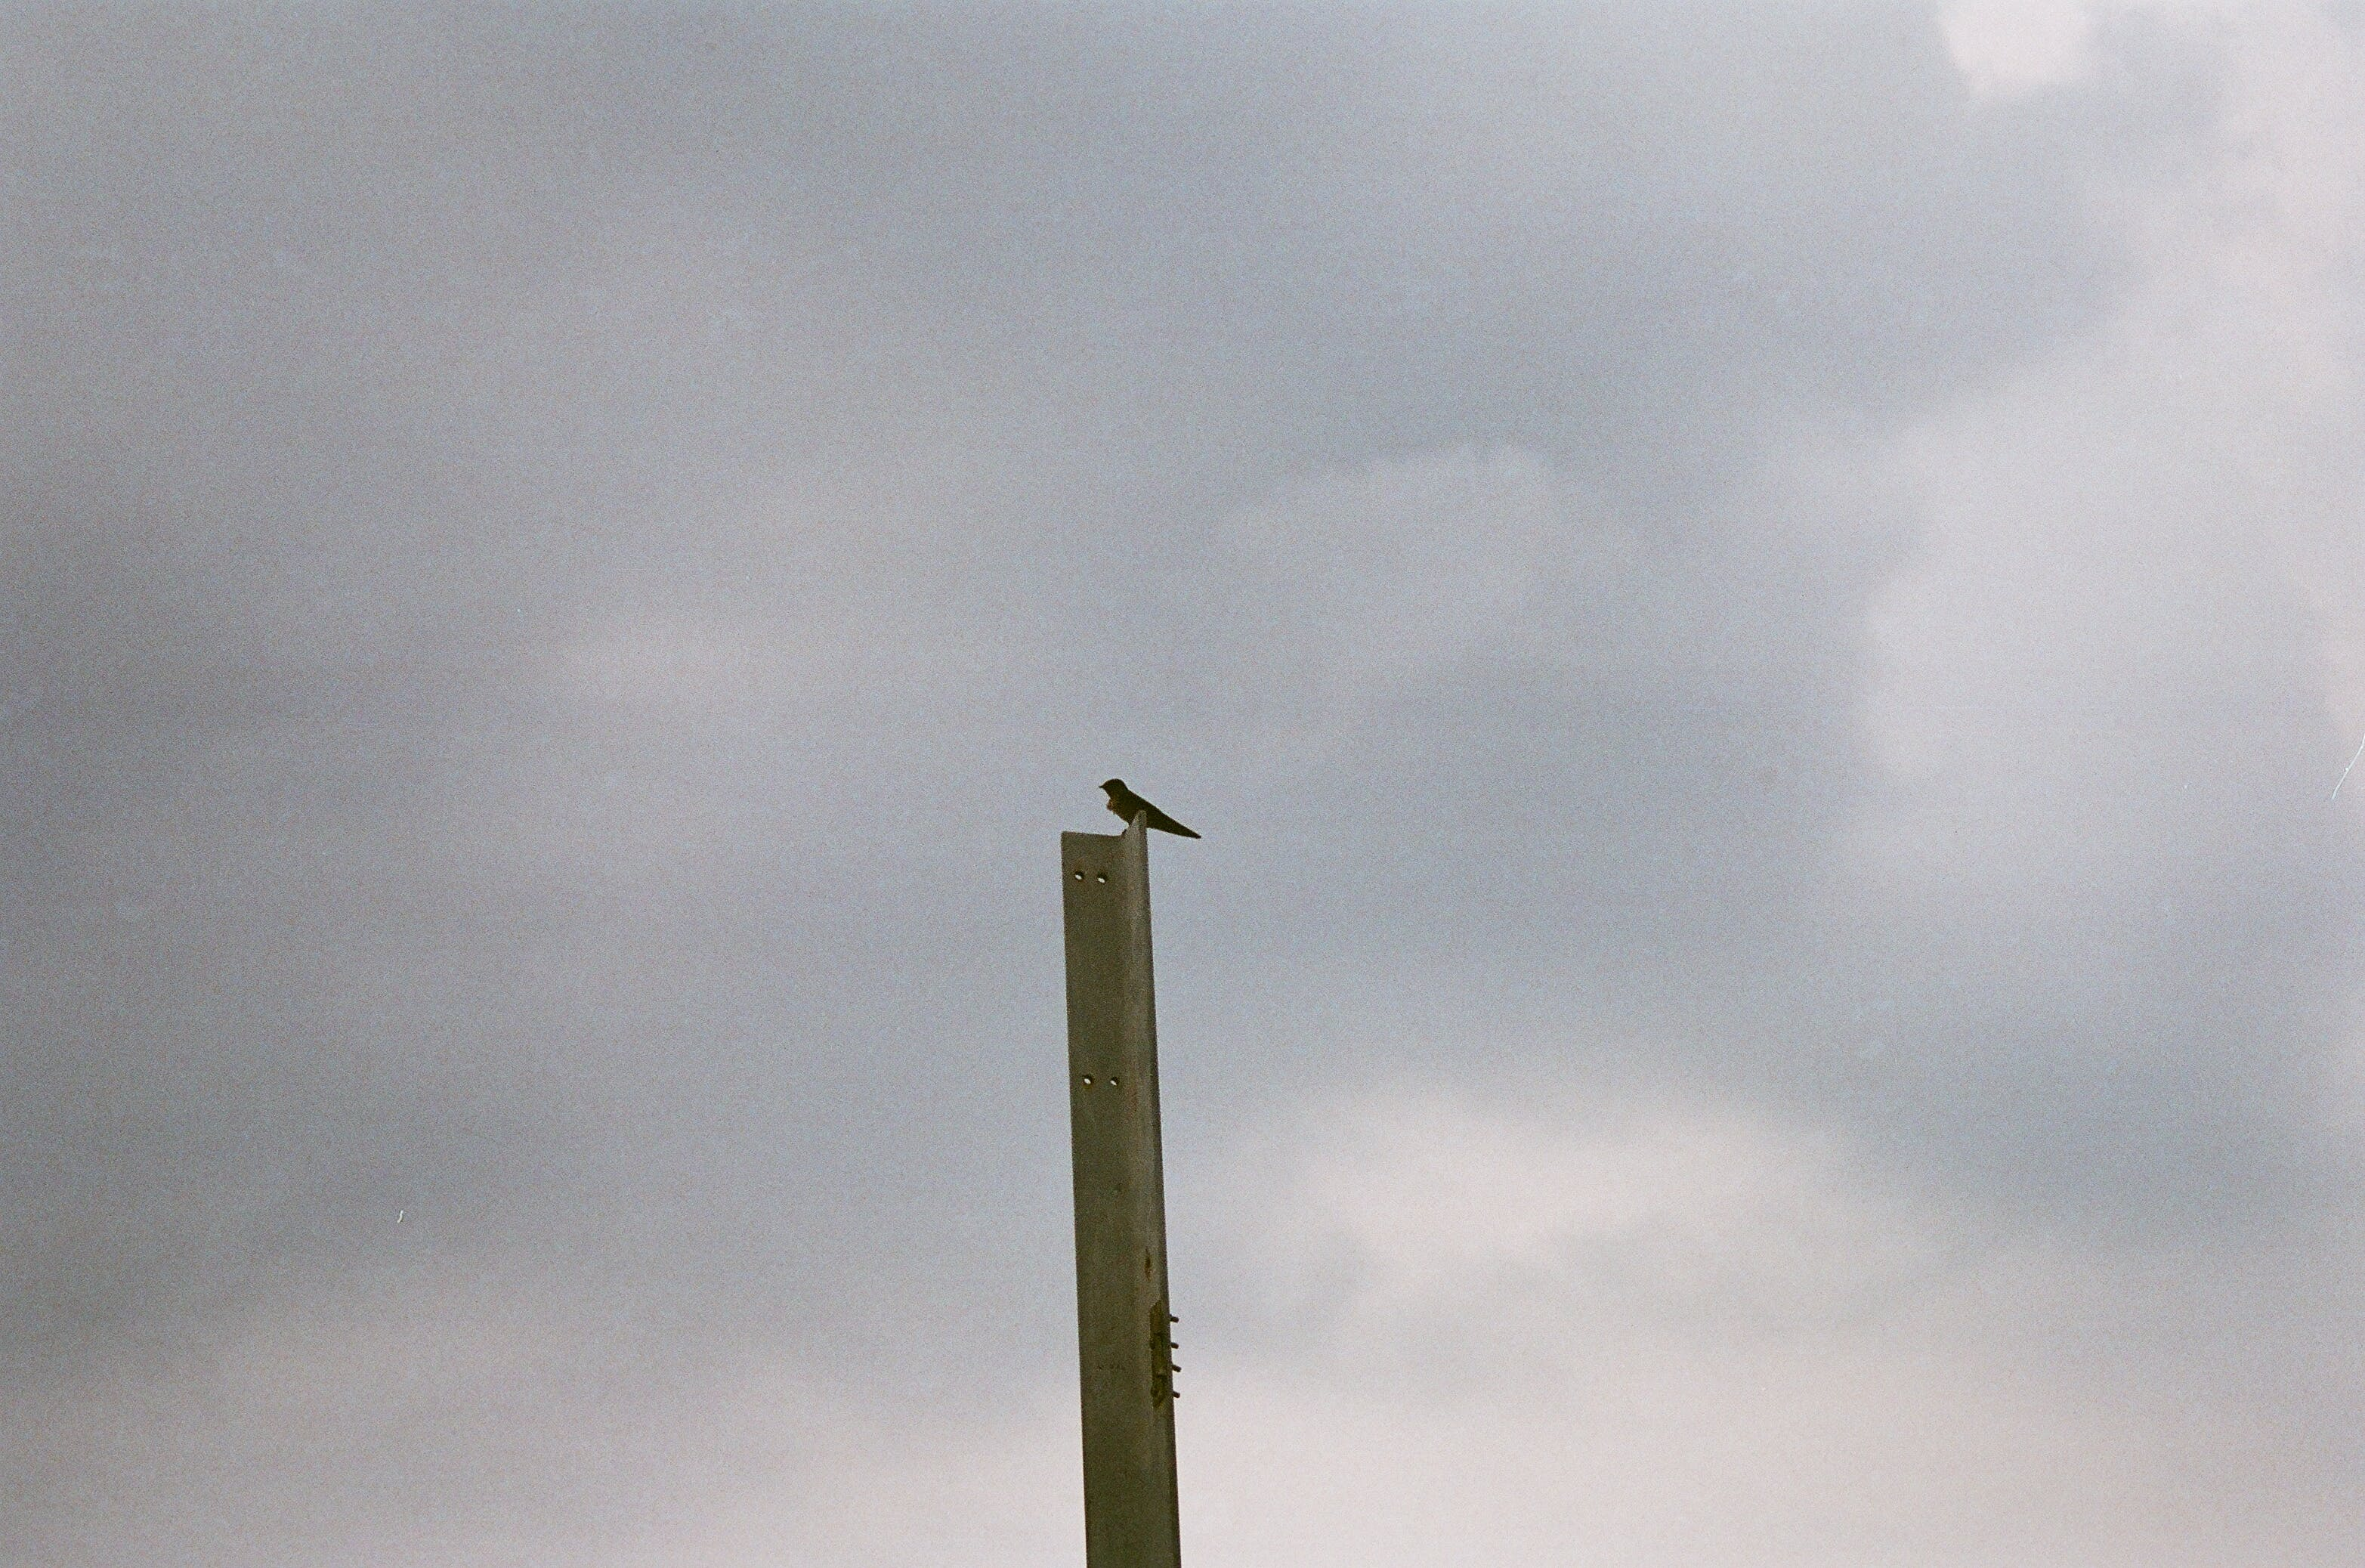 Bird Perching on Metal Beam